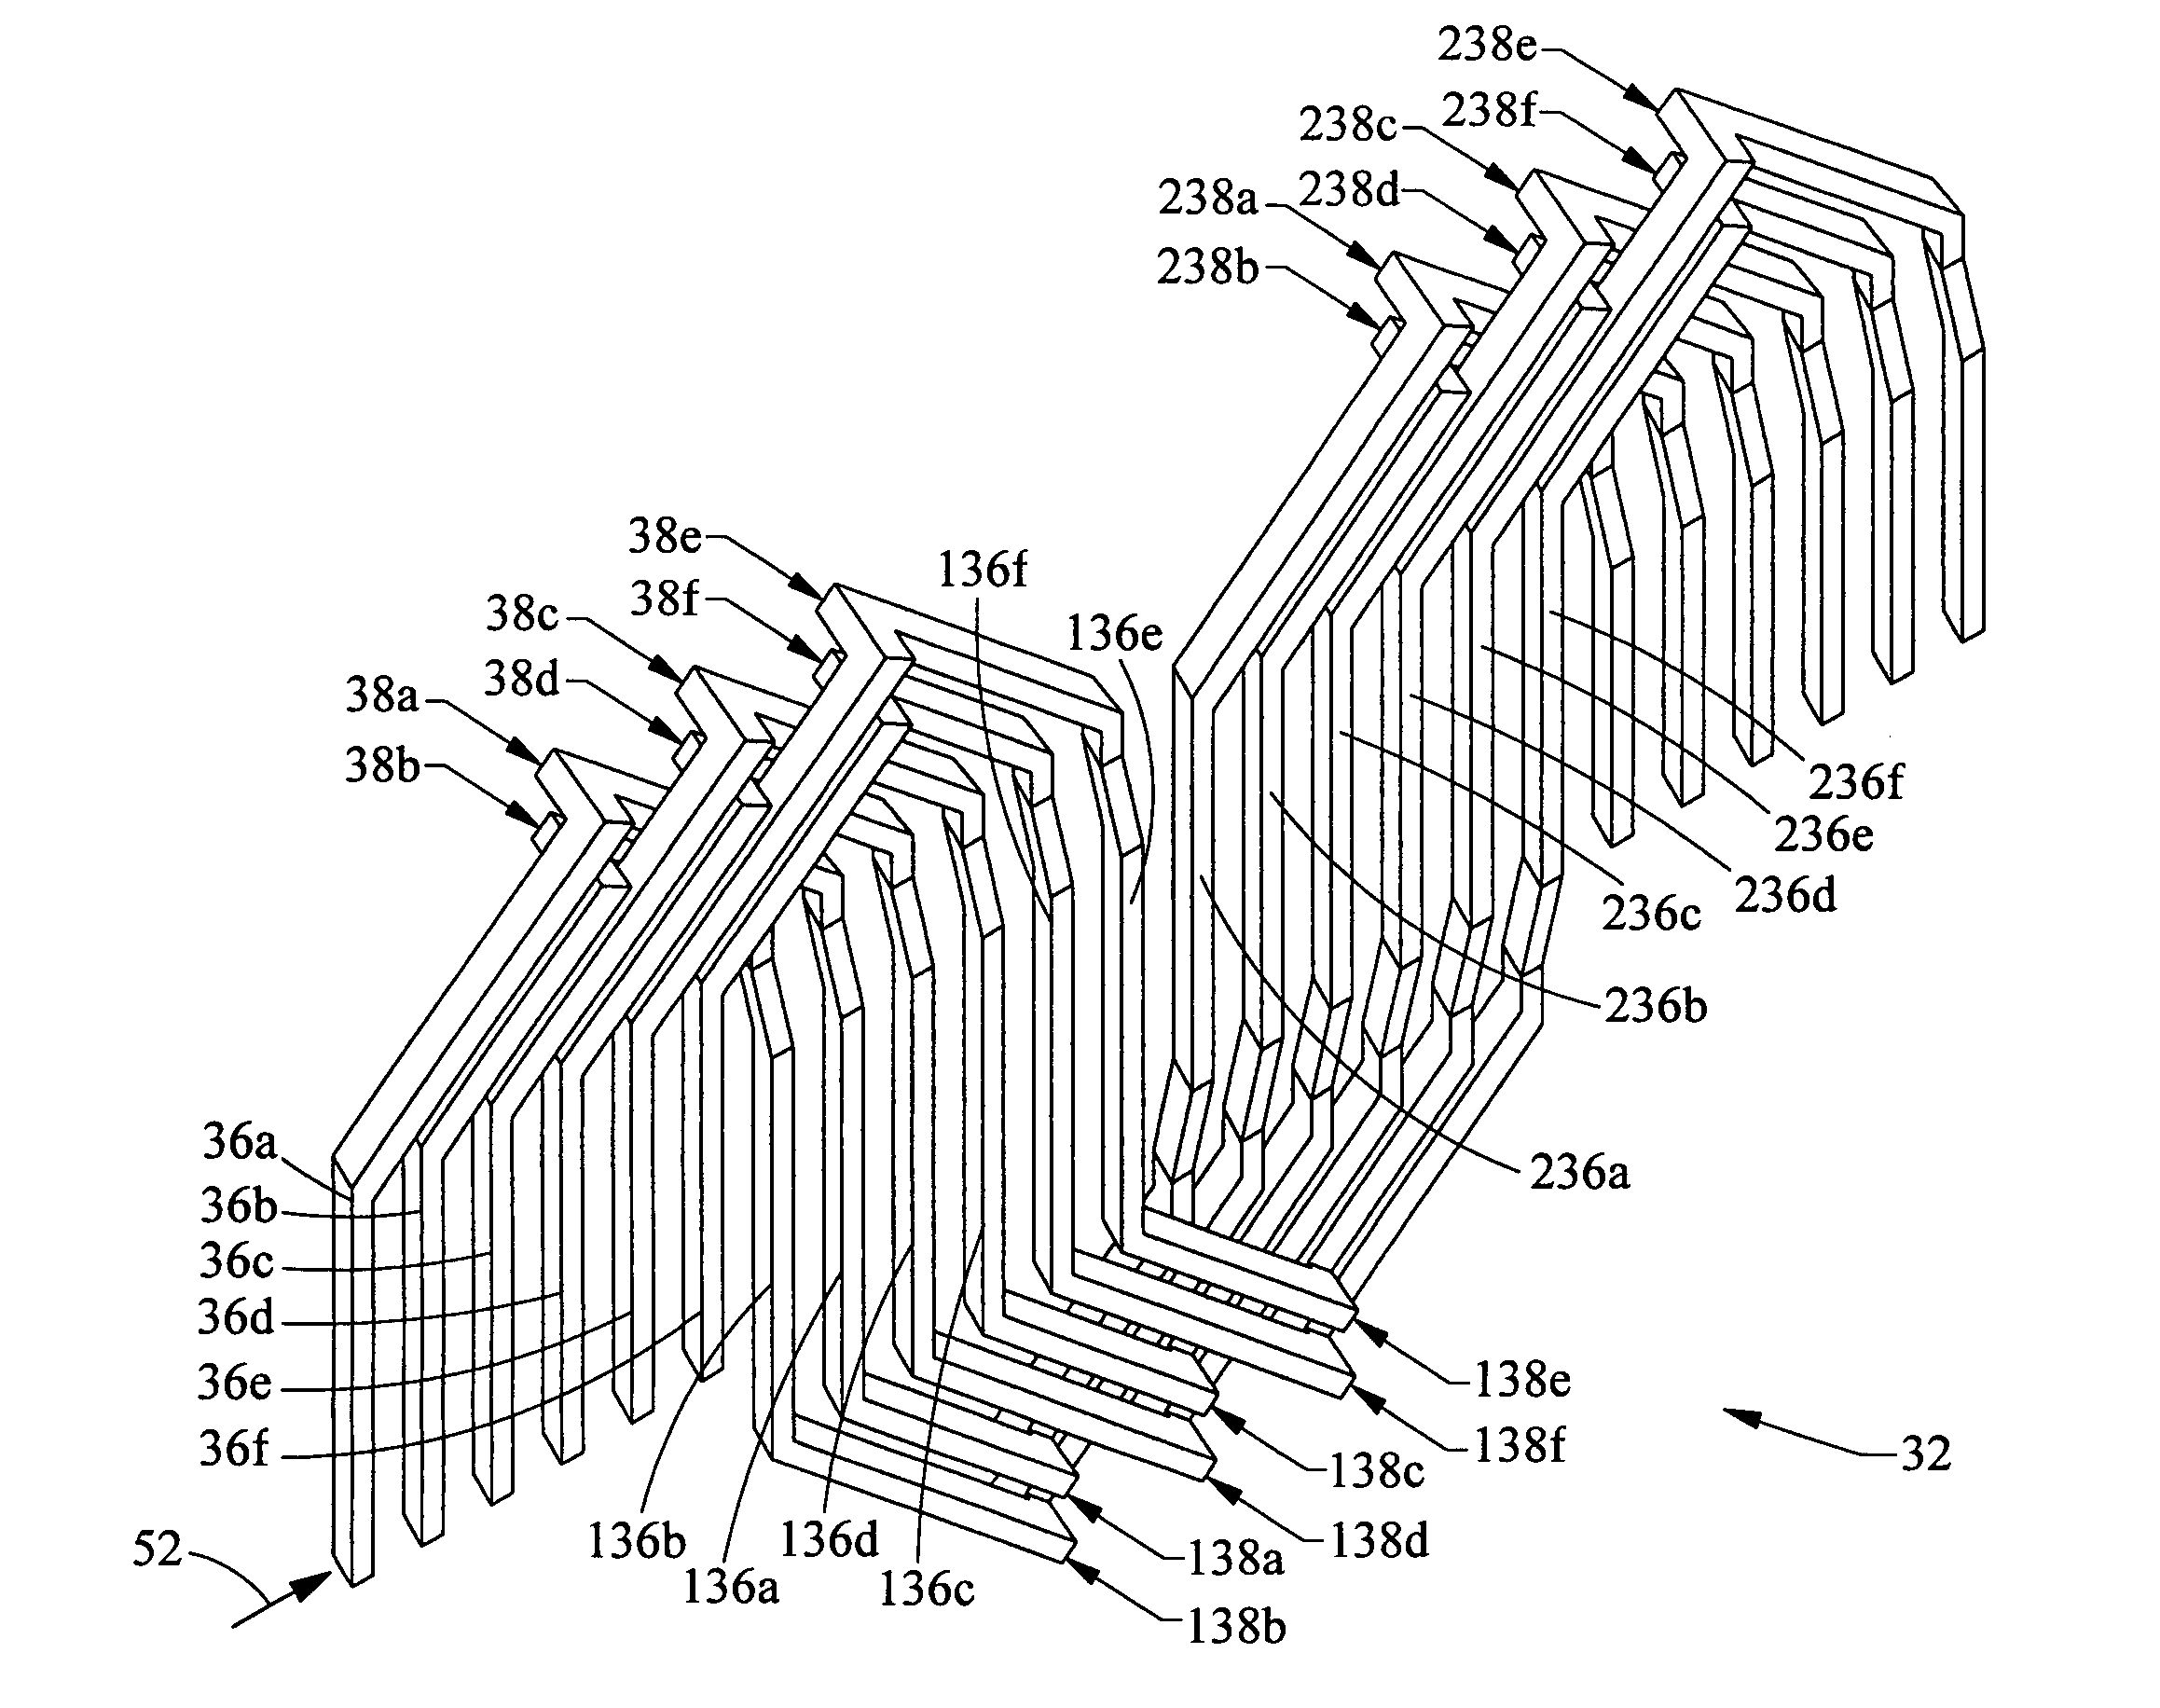 patent us7005772 - stator winding having two slots per phase per pole